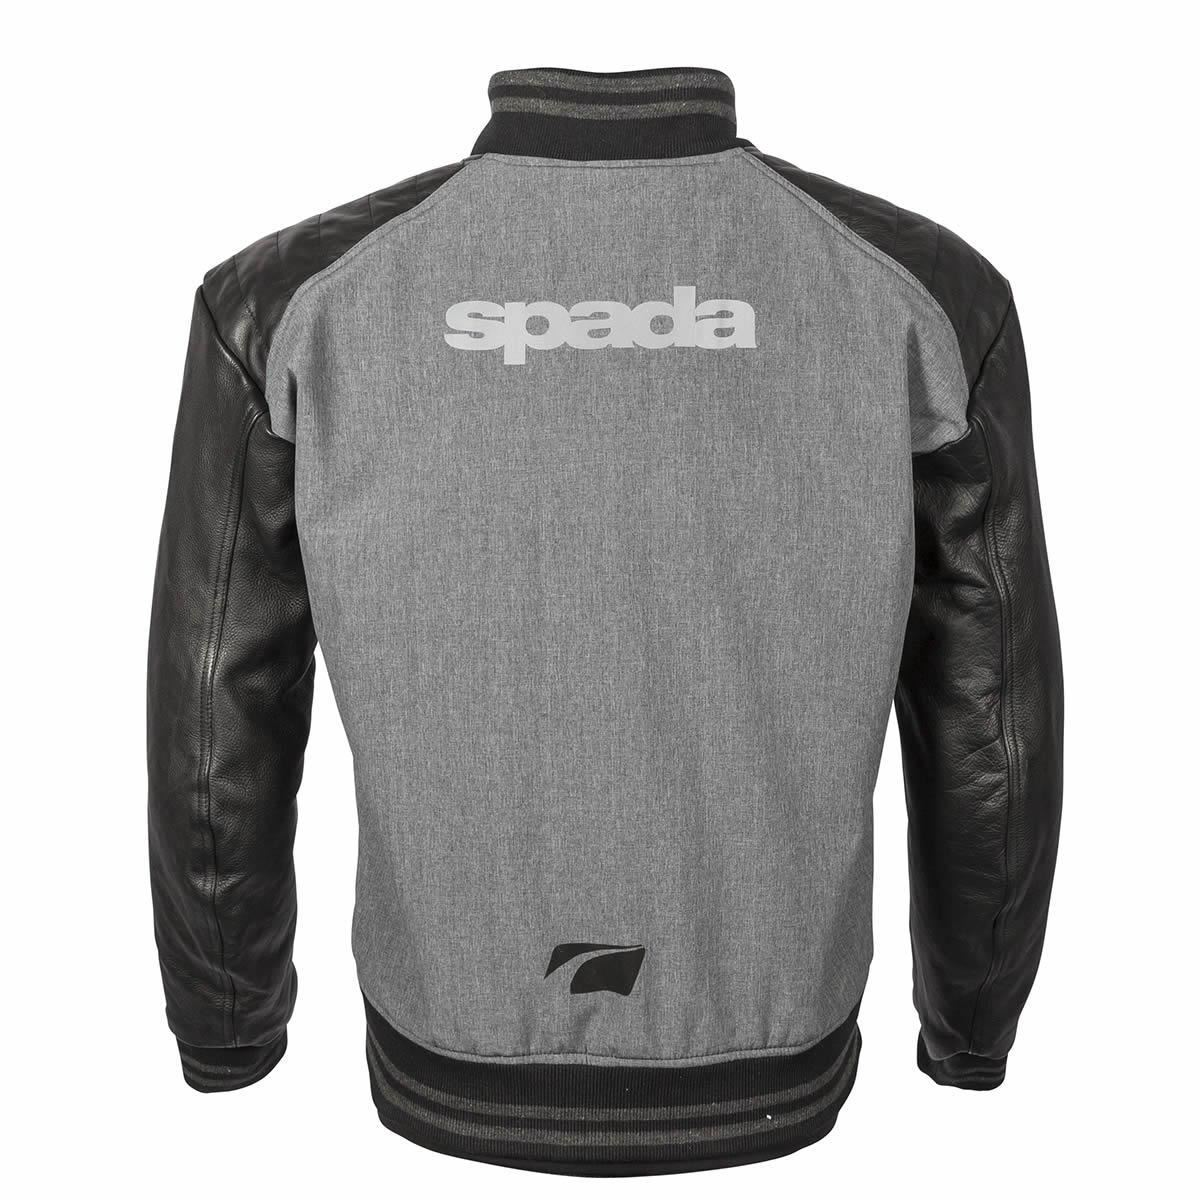 Spada-Campus-Yale-Men-039-s-Motorcycle-Jacket-Grey-Leather-Textile-CE-Armour-Summer miniature 19